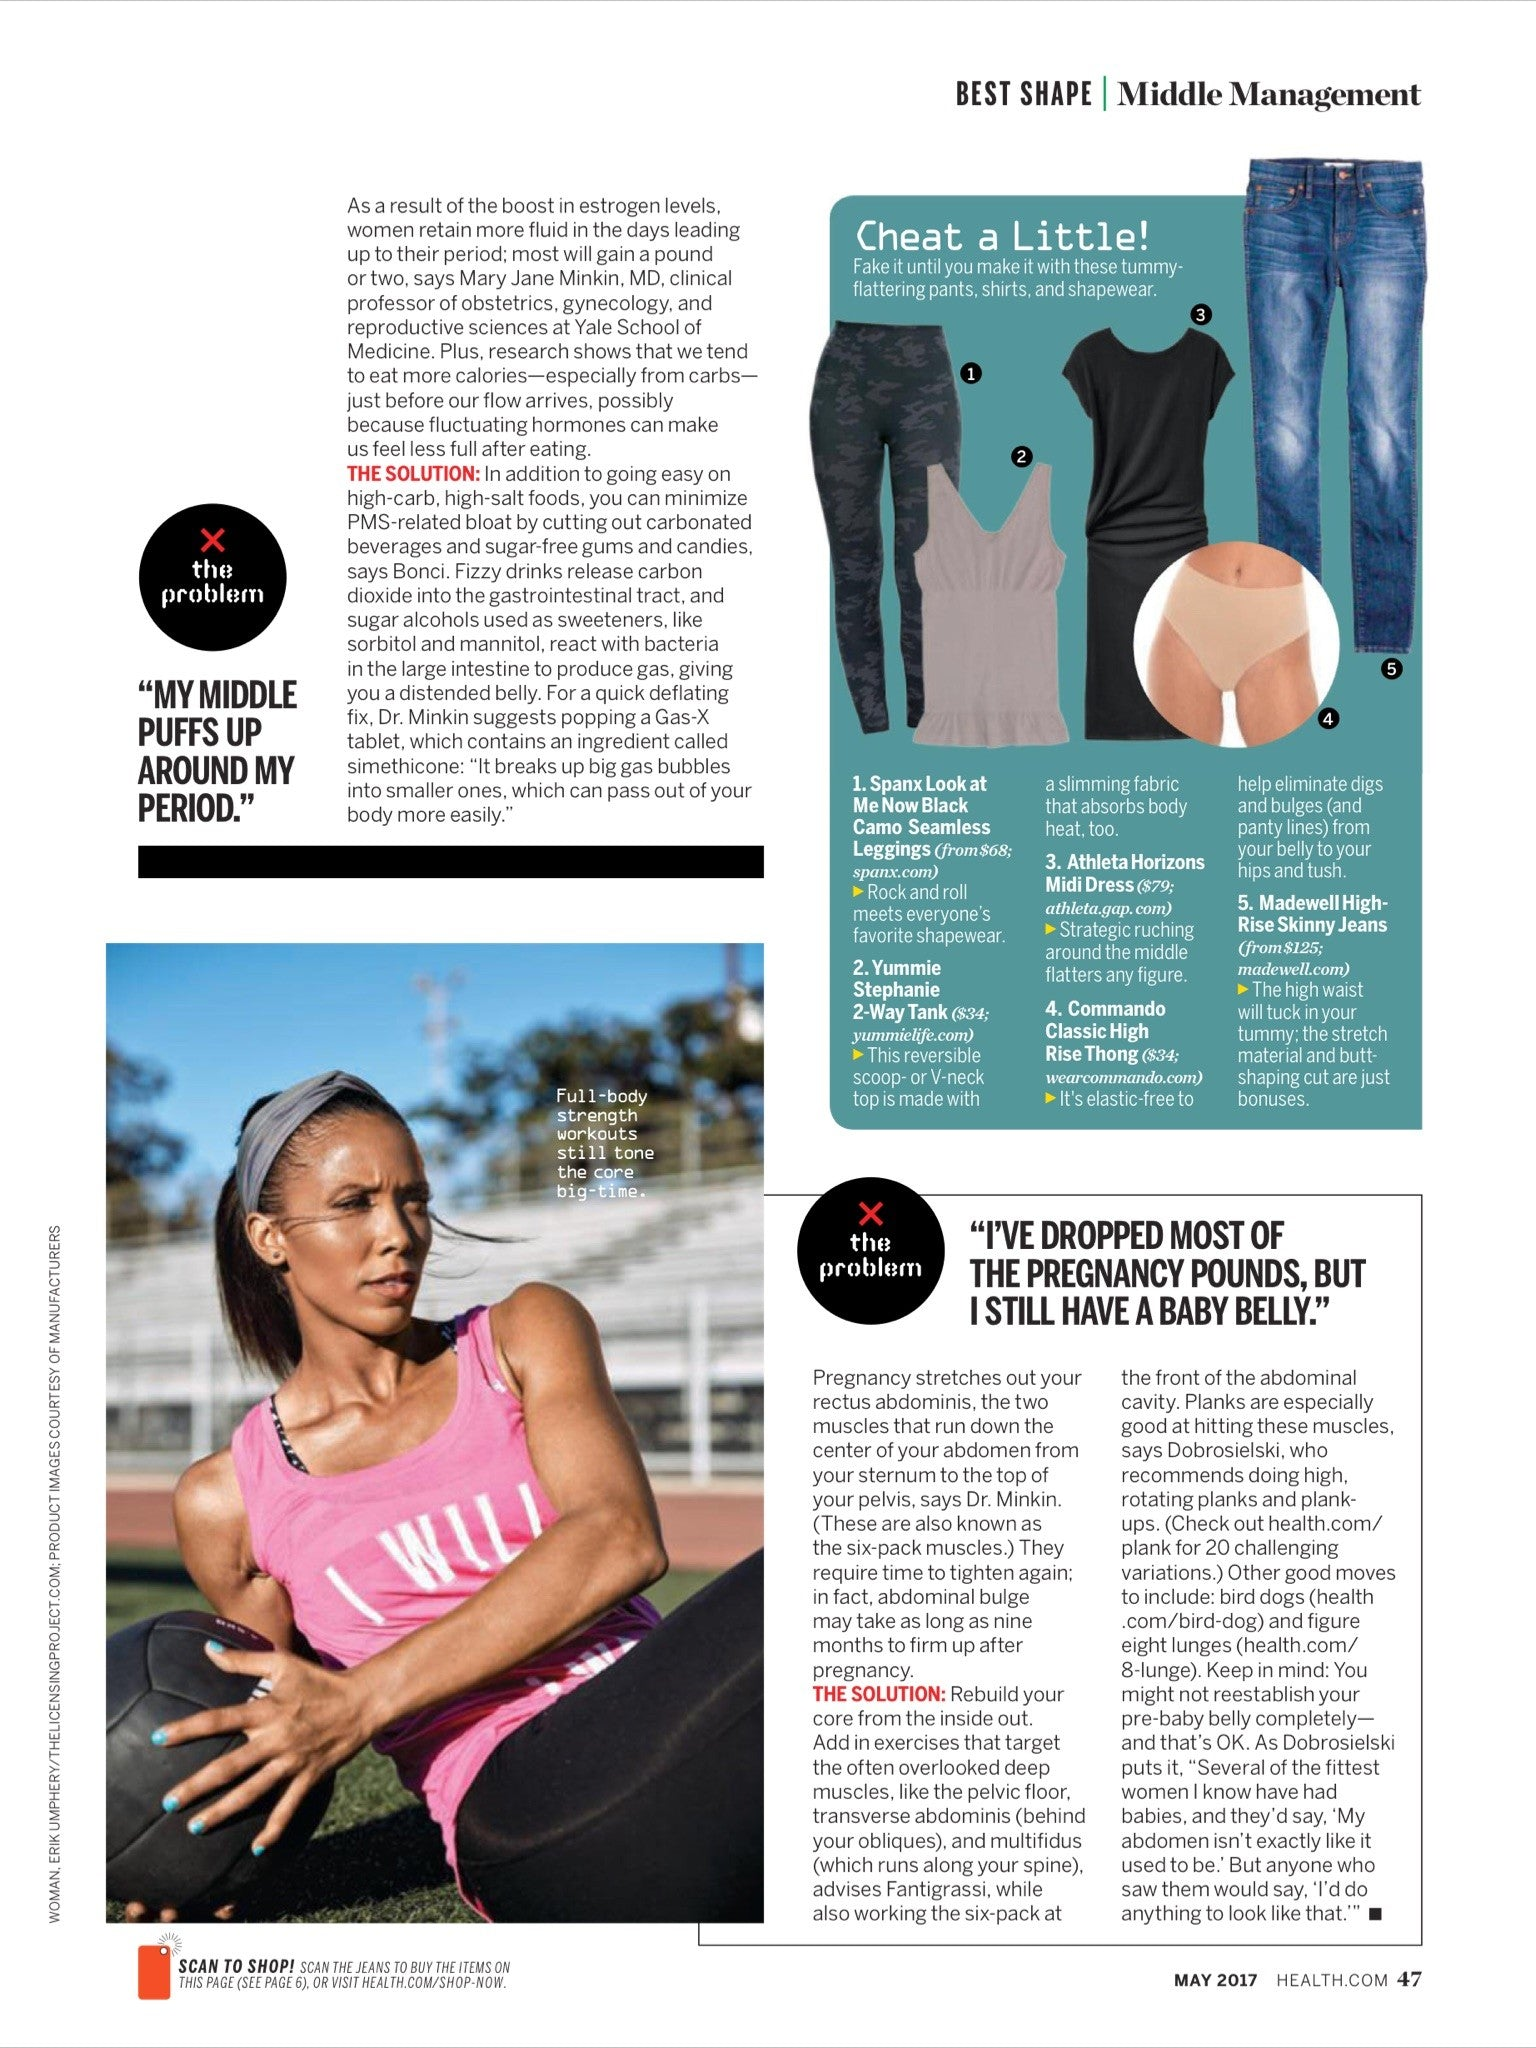 Tracy Anderson on the cover of Health Magazine.